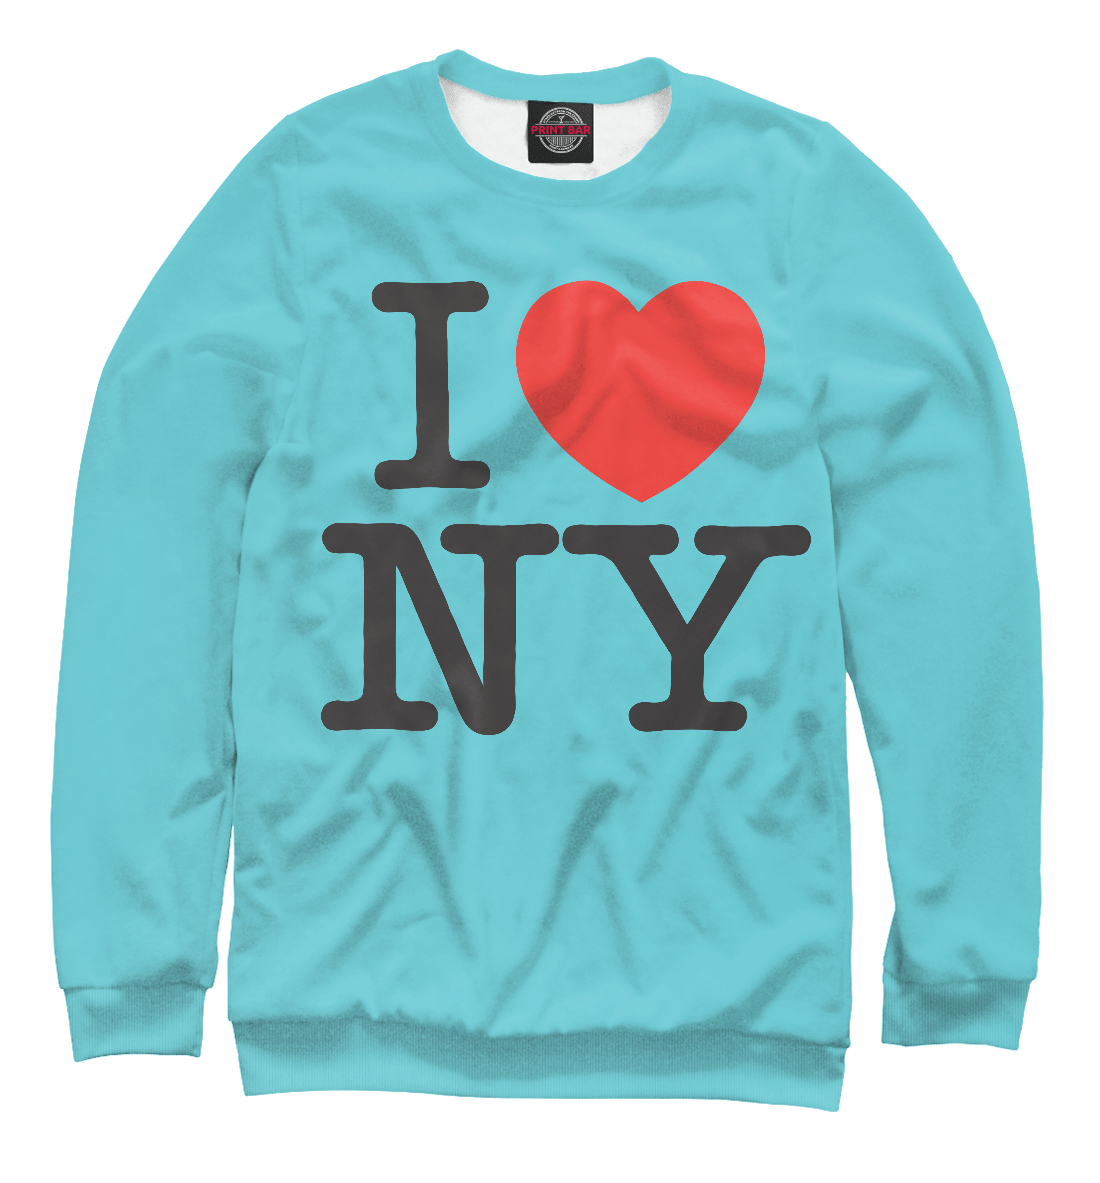 Купить I Love New York, Printbar, Свитшоты, USA-326997-swi-1